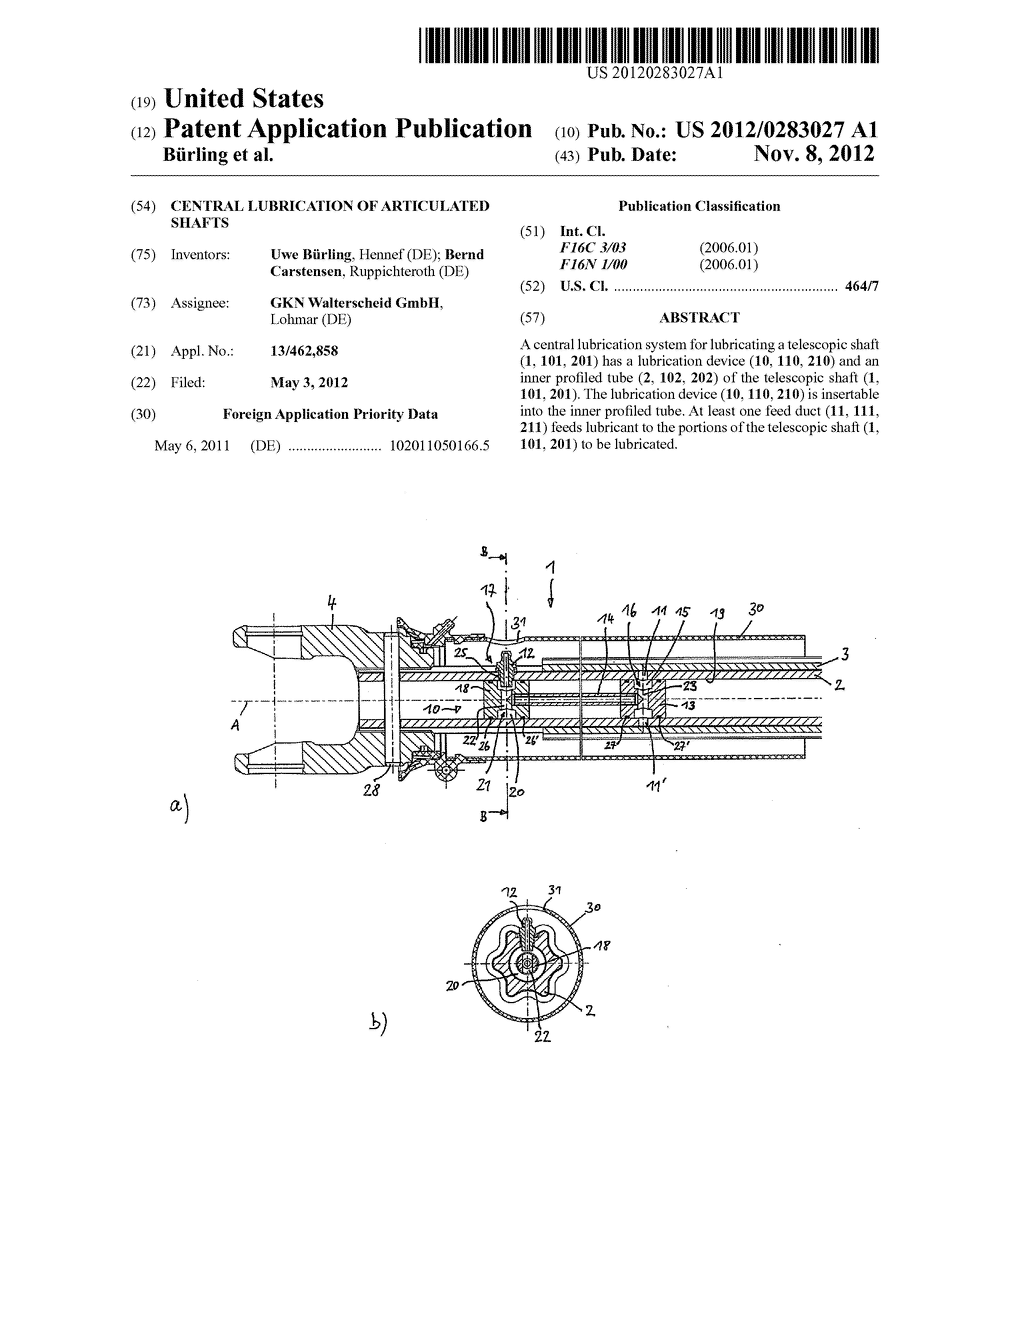 Central Lubrication of Articulated Shafts - diagram, schematic, and image 01